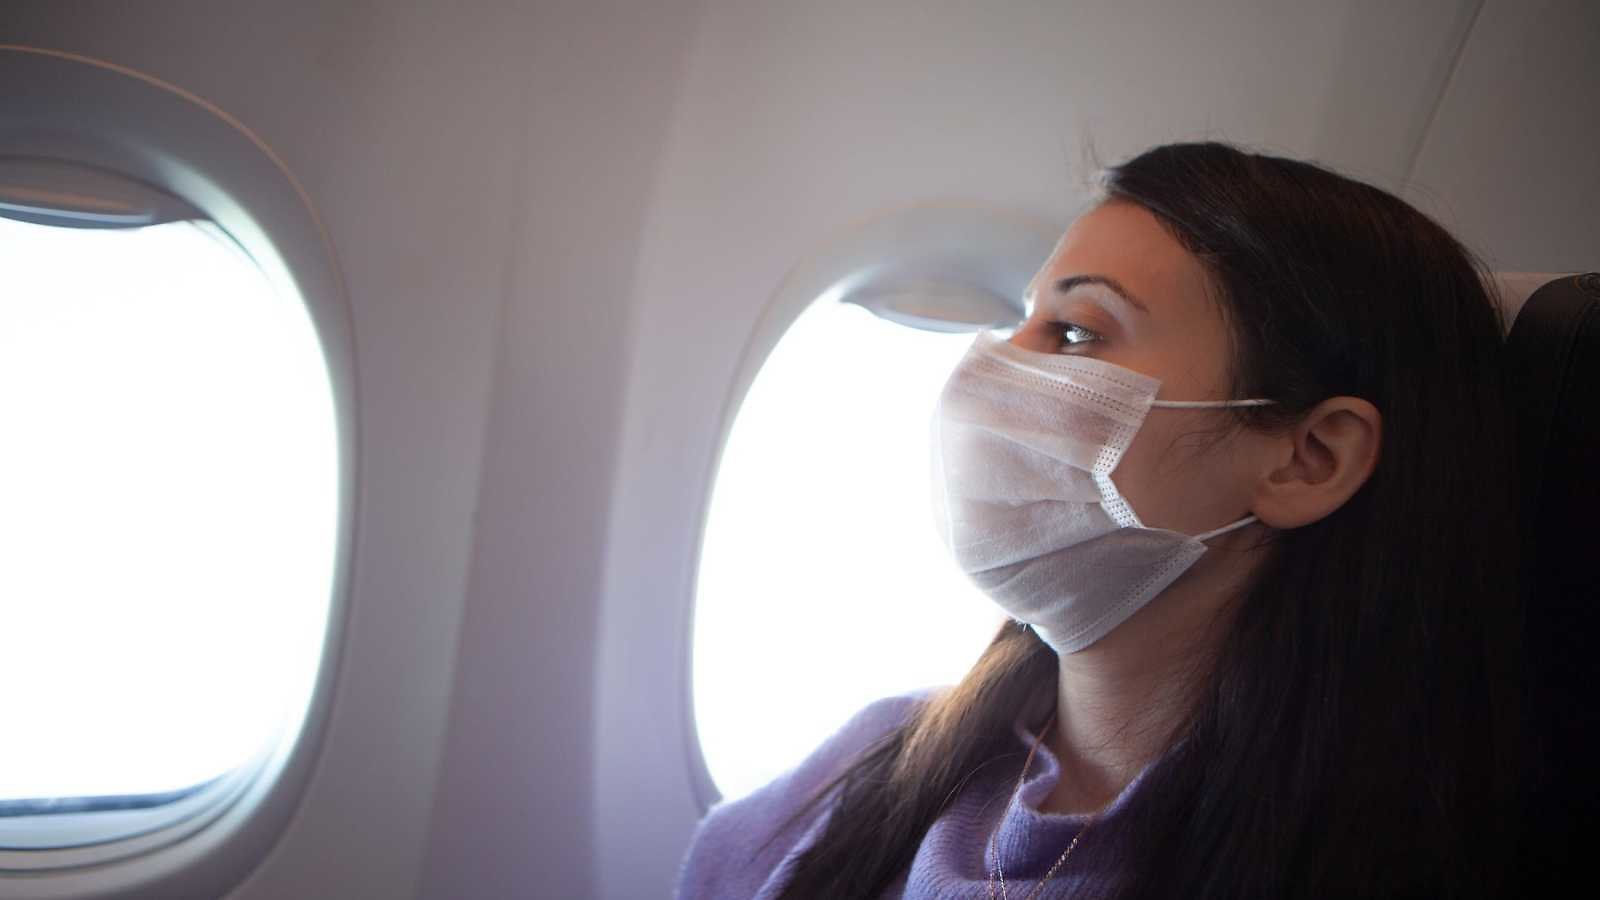 How Long Will Masks Be Required On Planes? Flight Attendants Say Mandate Should Be Extended